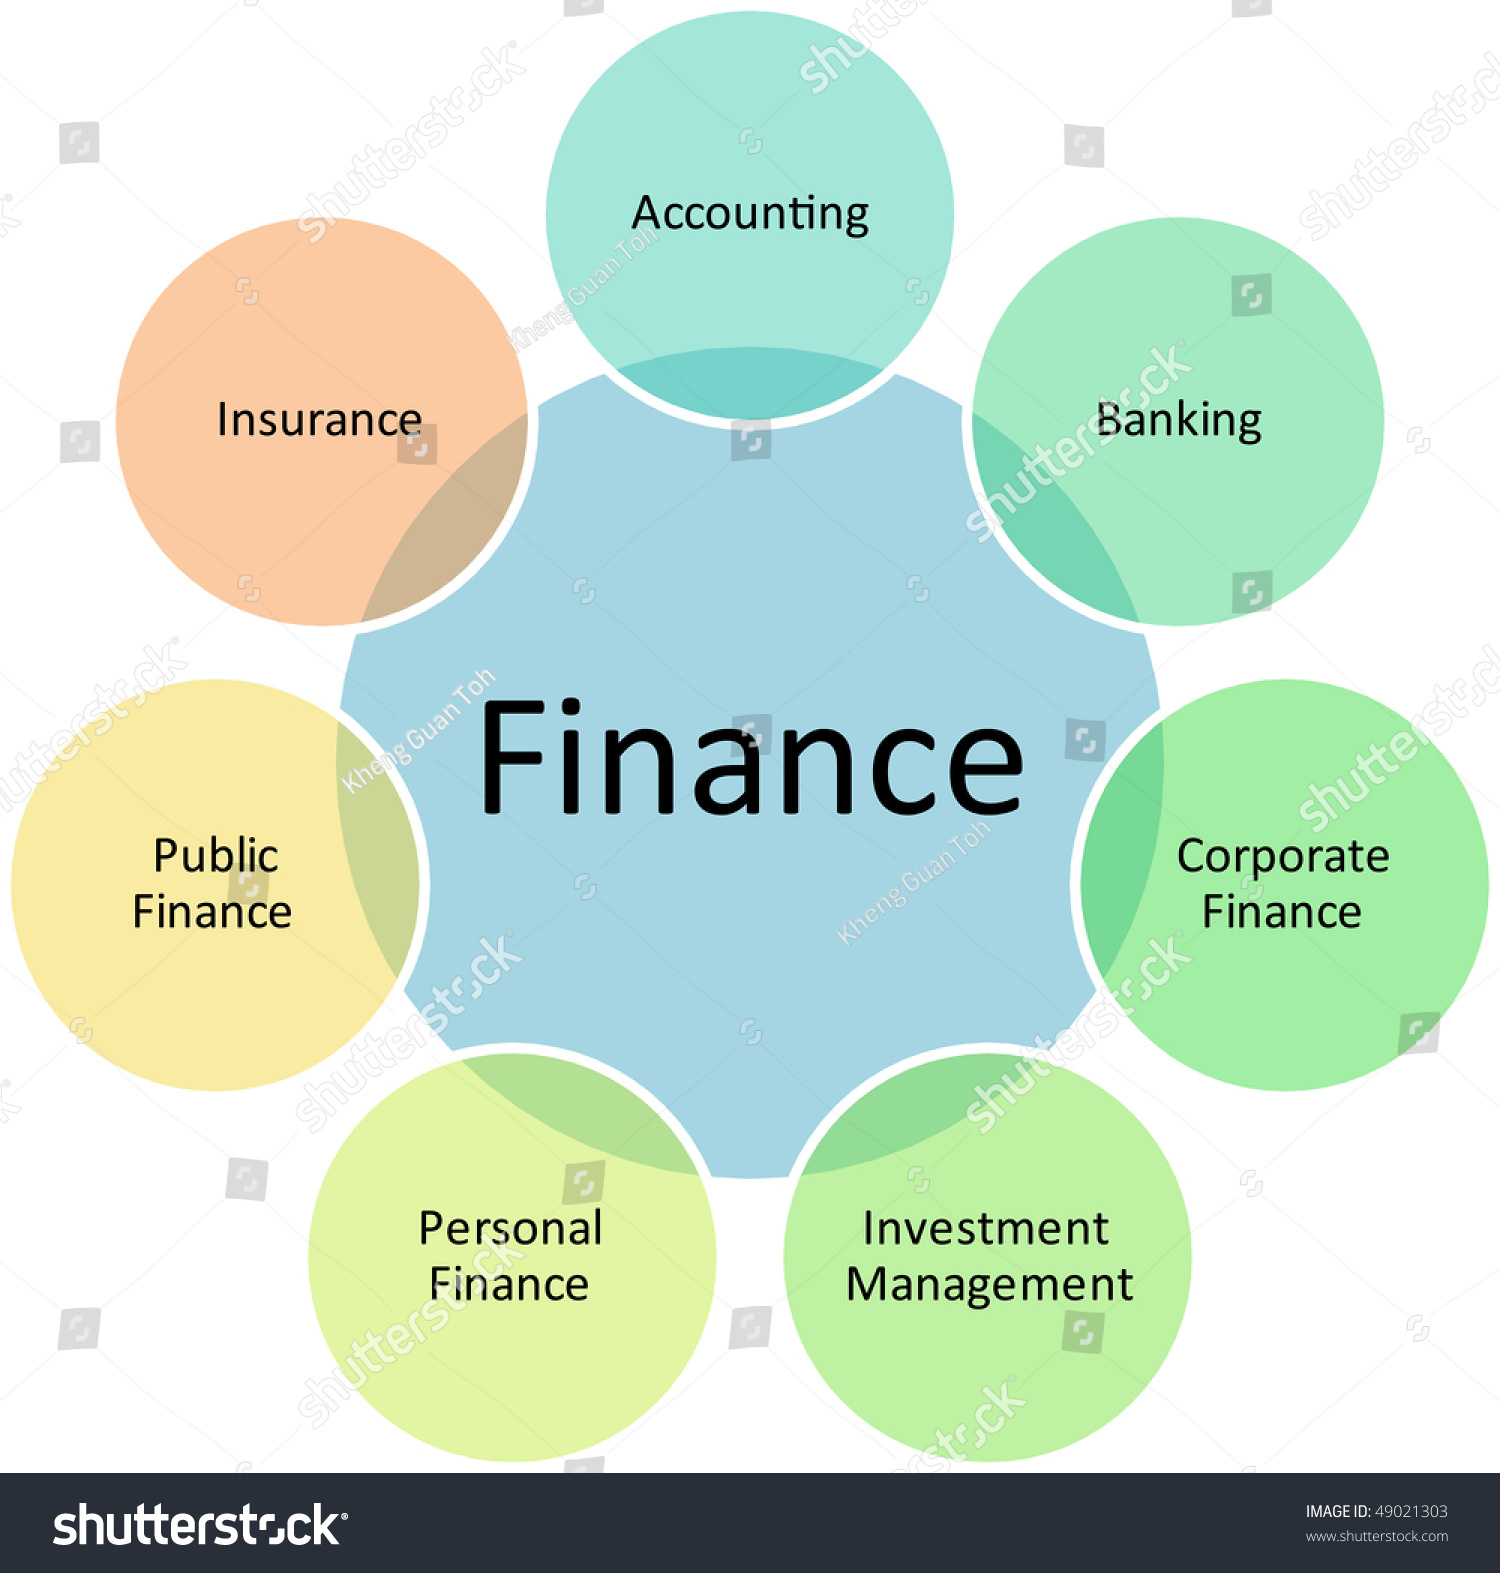 hight resolution of finance classification management business strategy concept diagram illustration